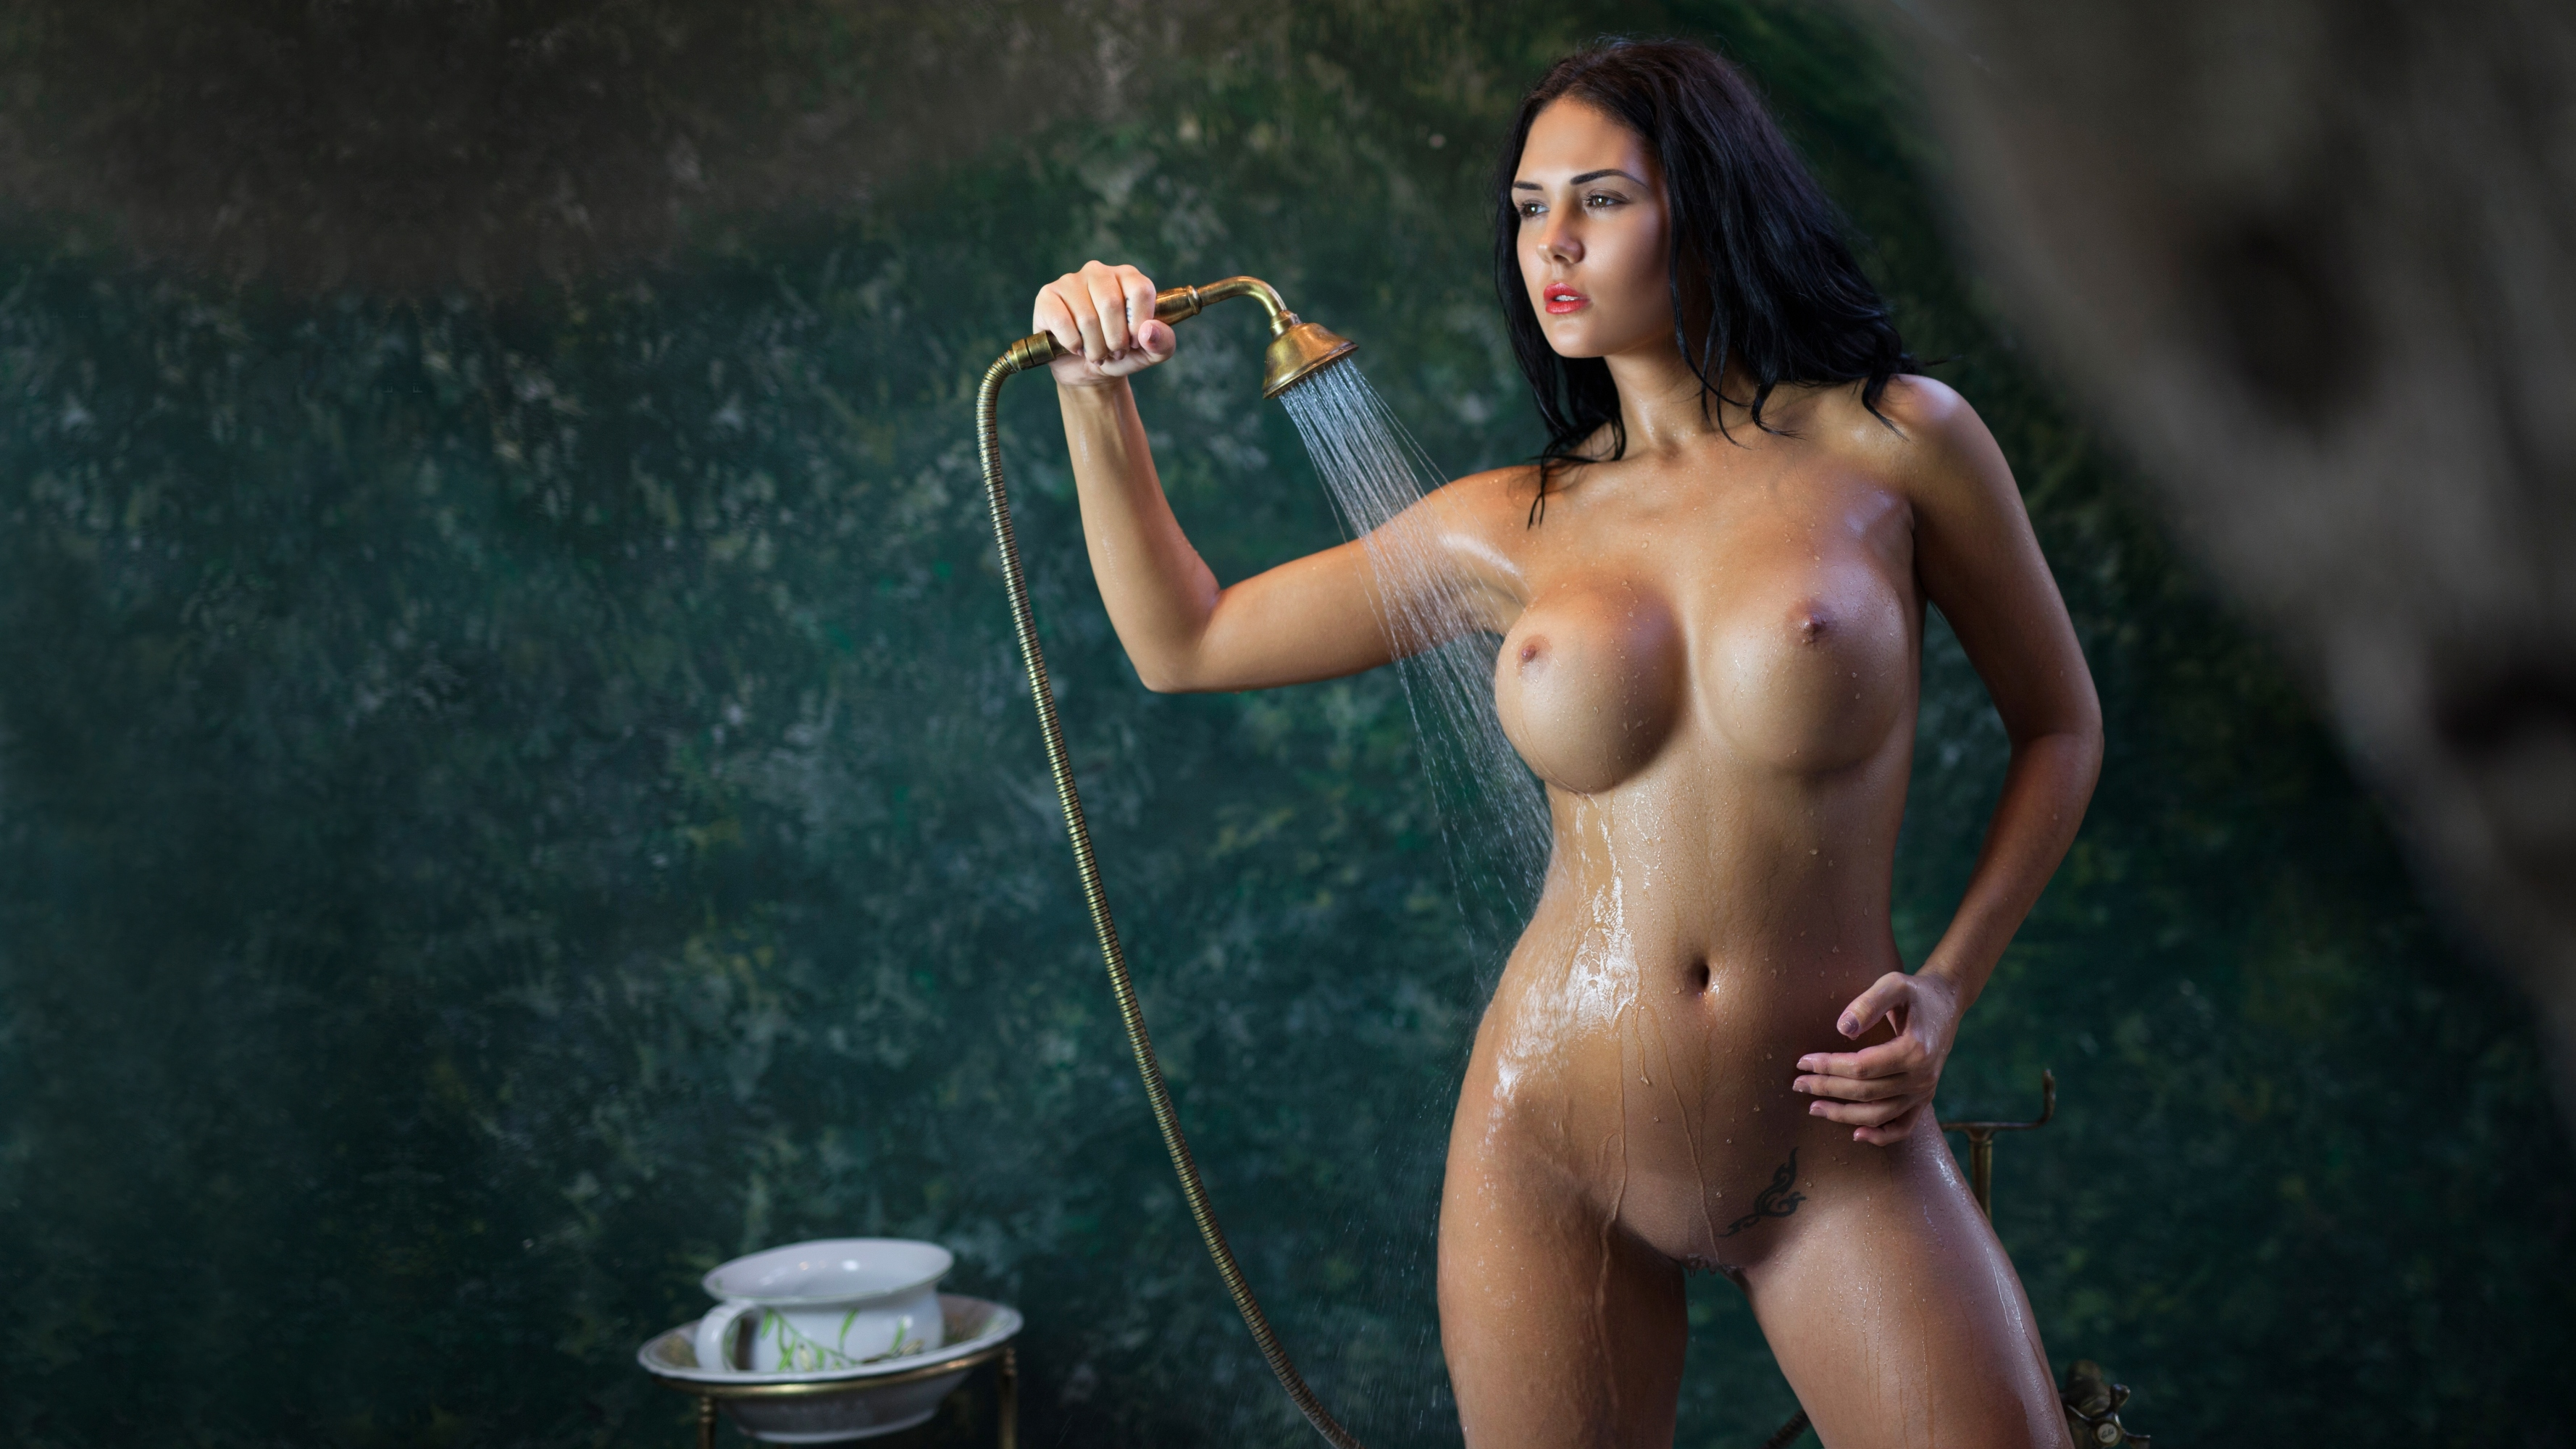 Imagine getting Amature shower fun with squirting nice woman who